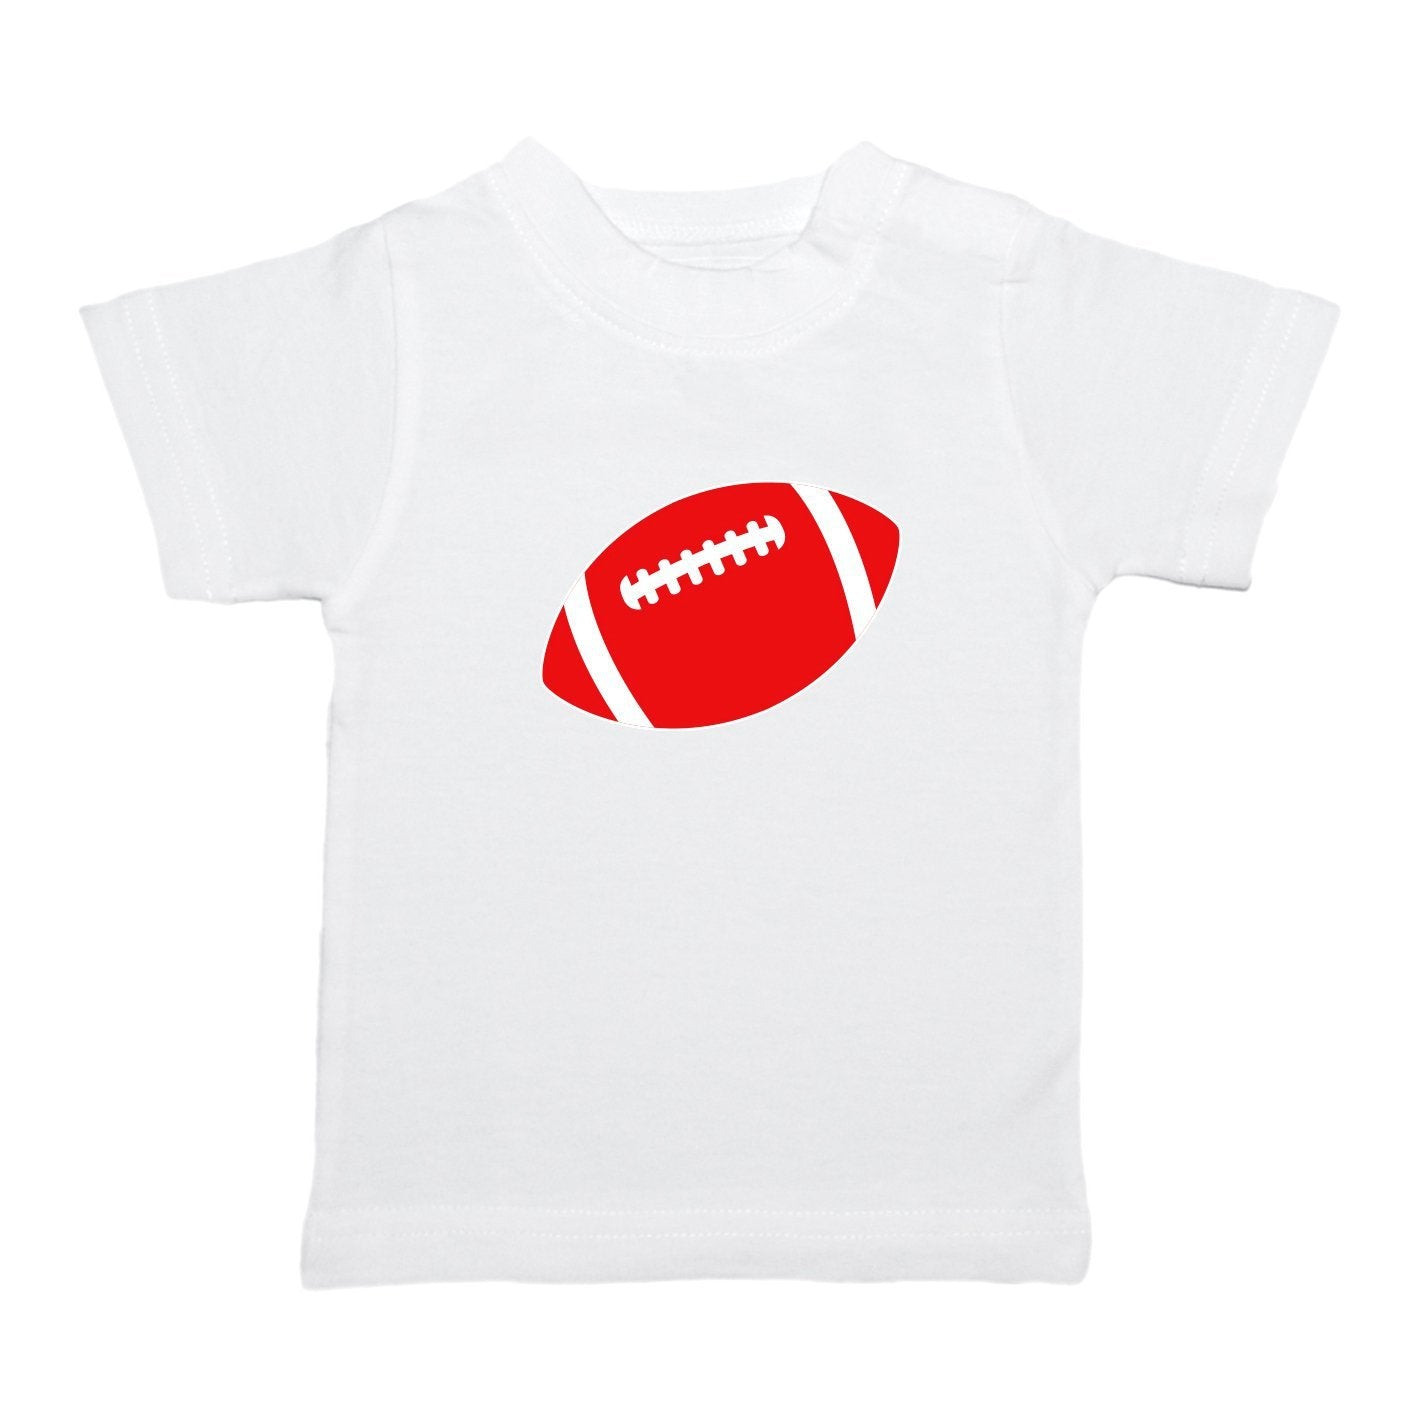 Ohio State University Short Sleeve Tee